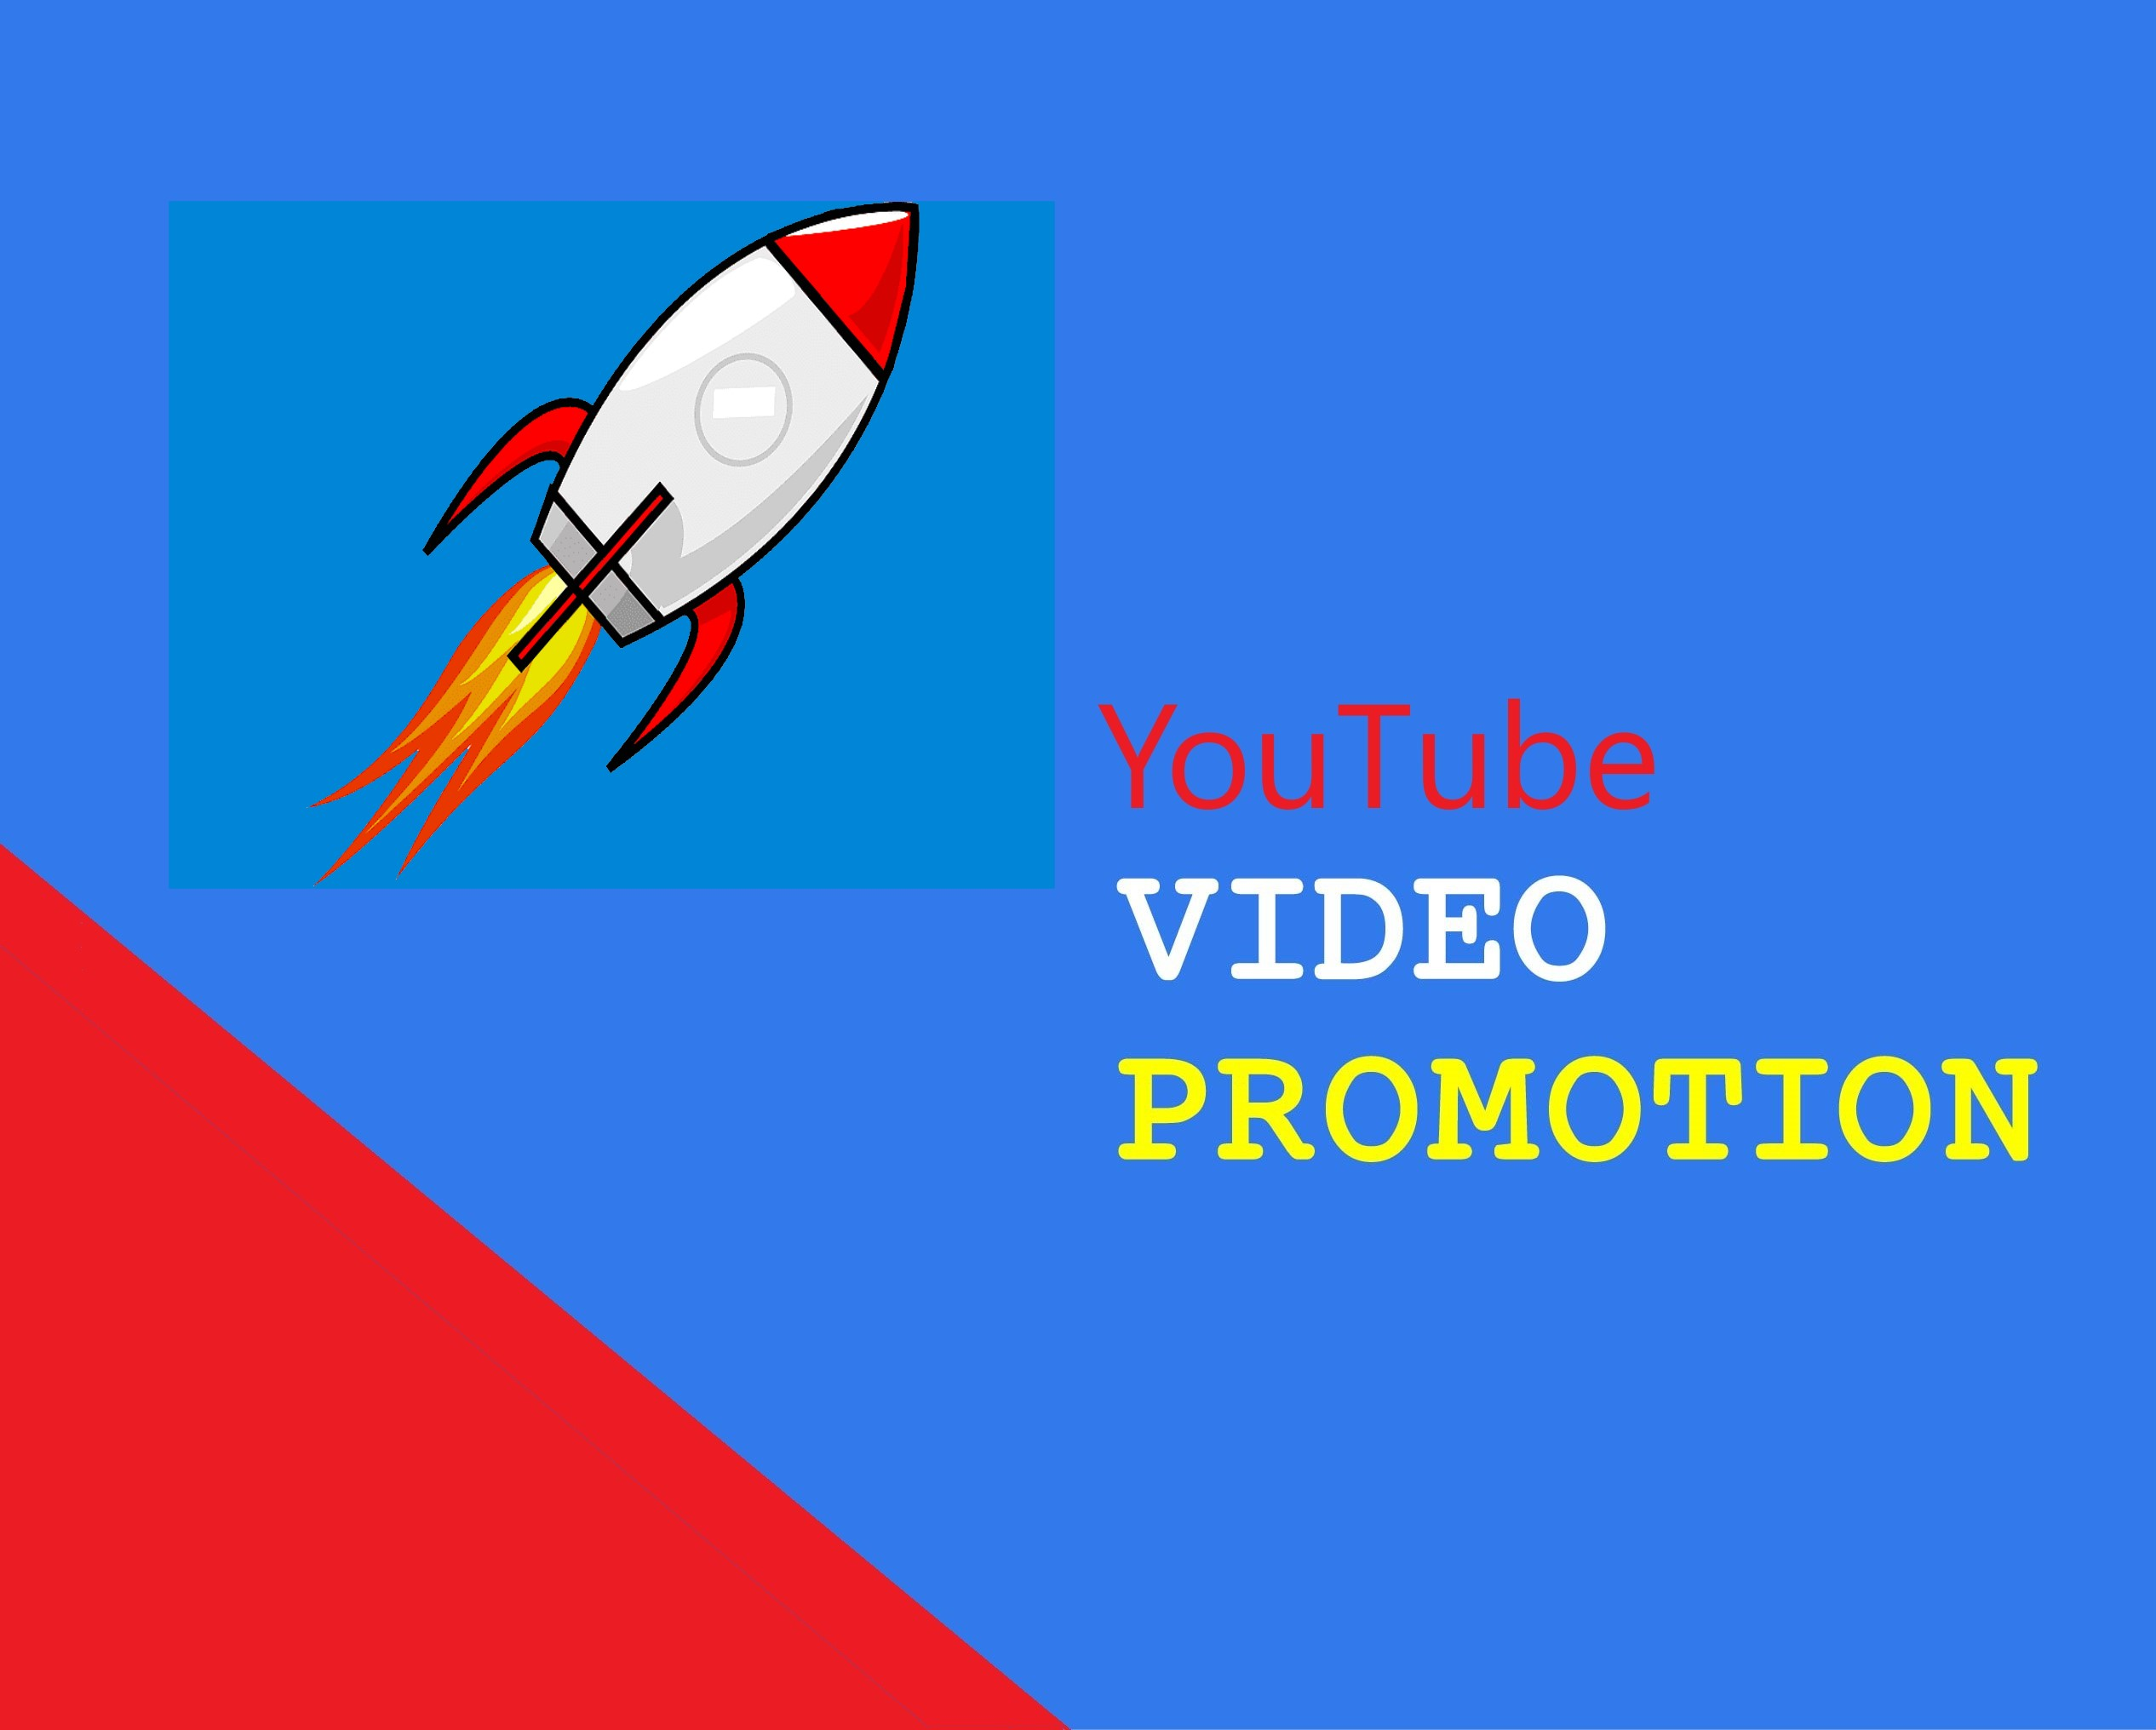 you'll have organic promotion of youtube videos